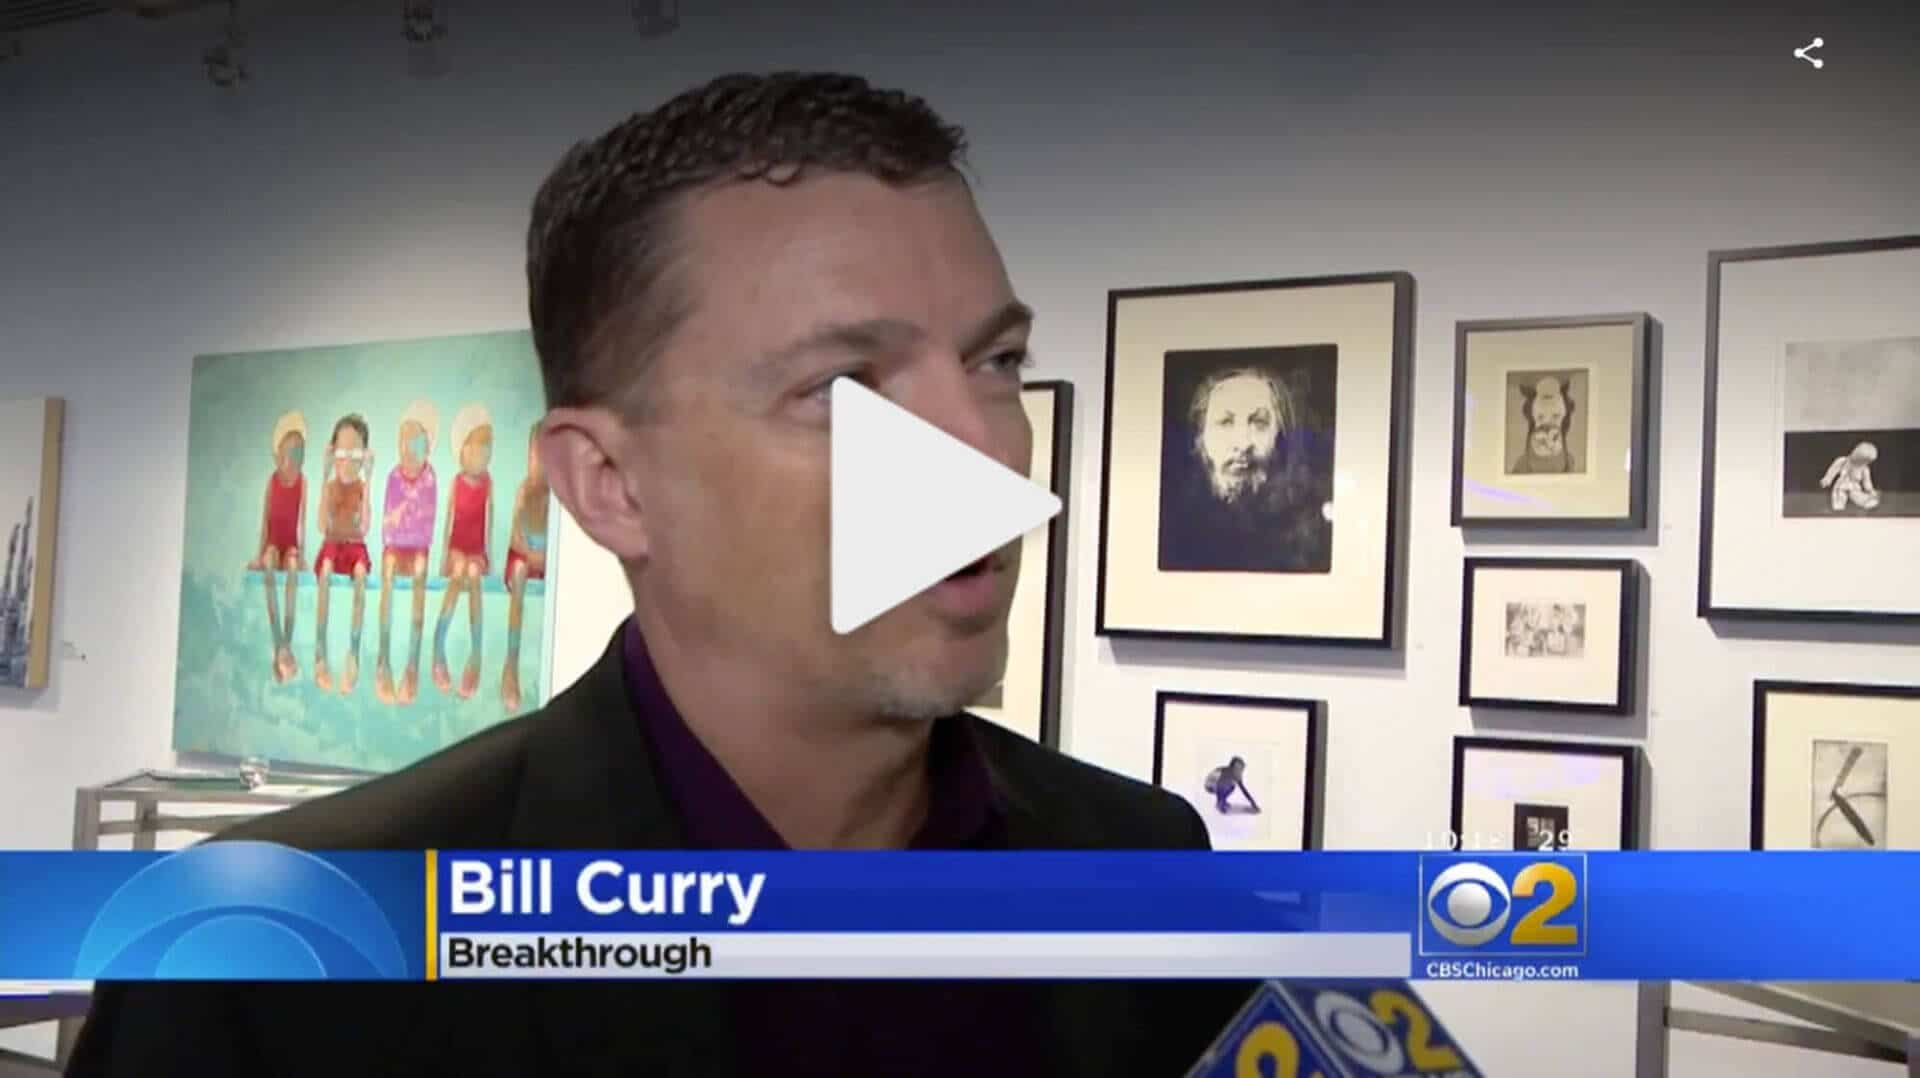 BIll Curry on CBS Chicago interview